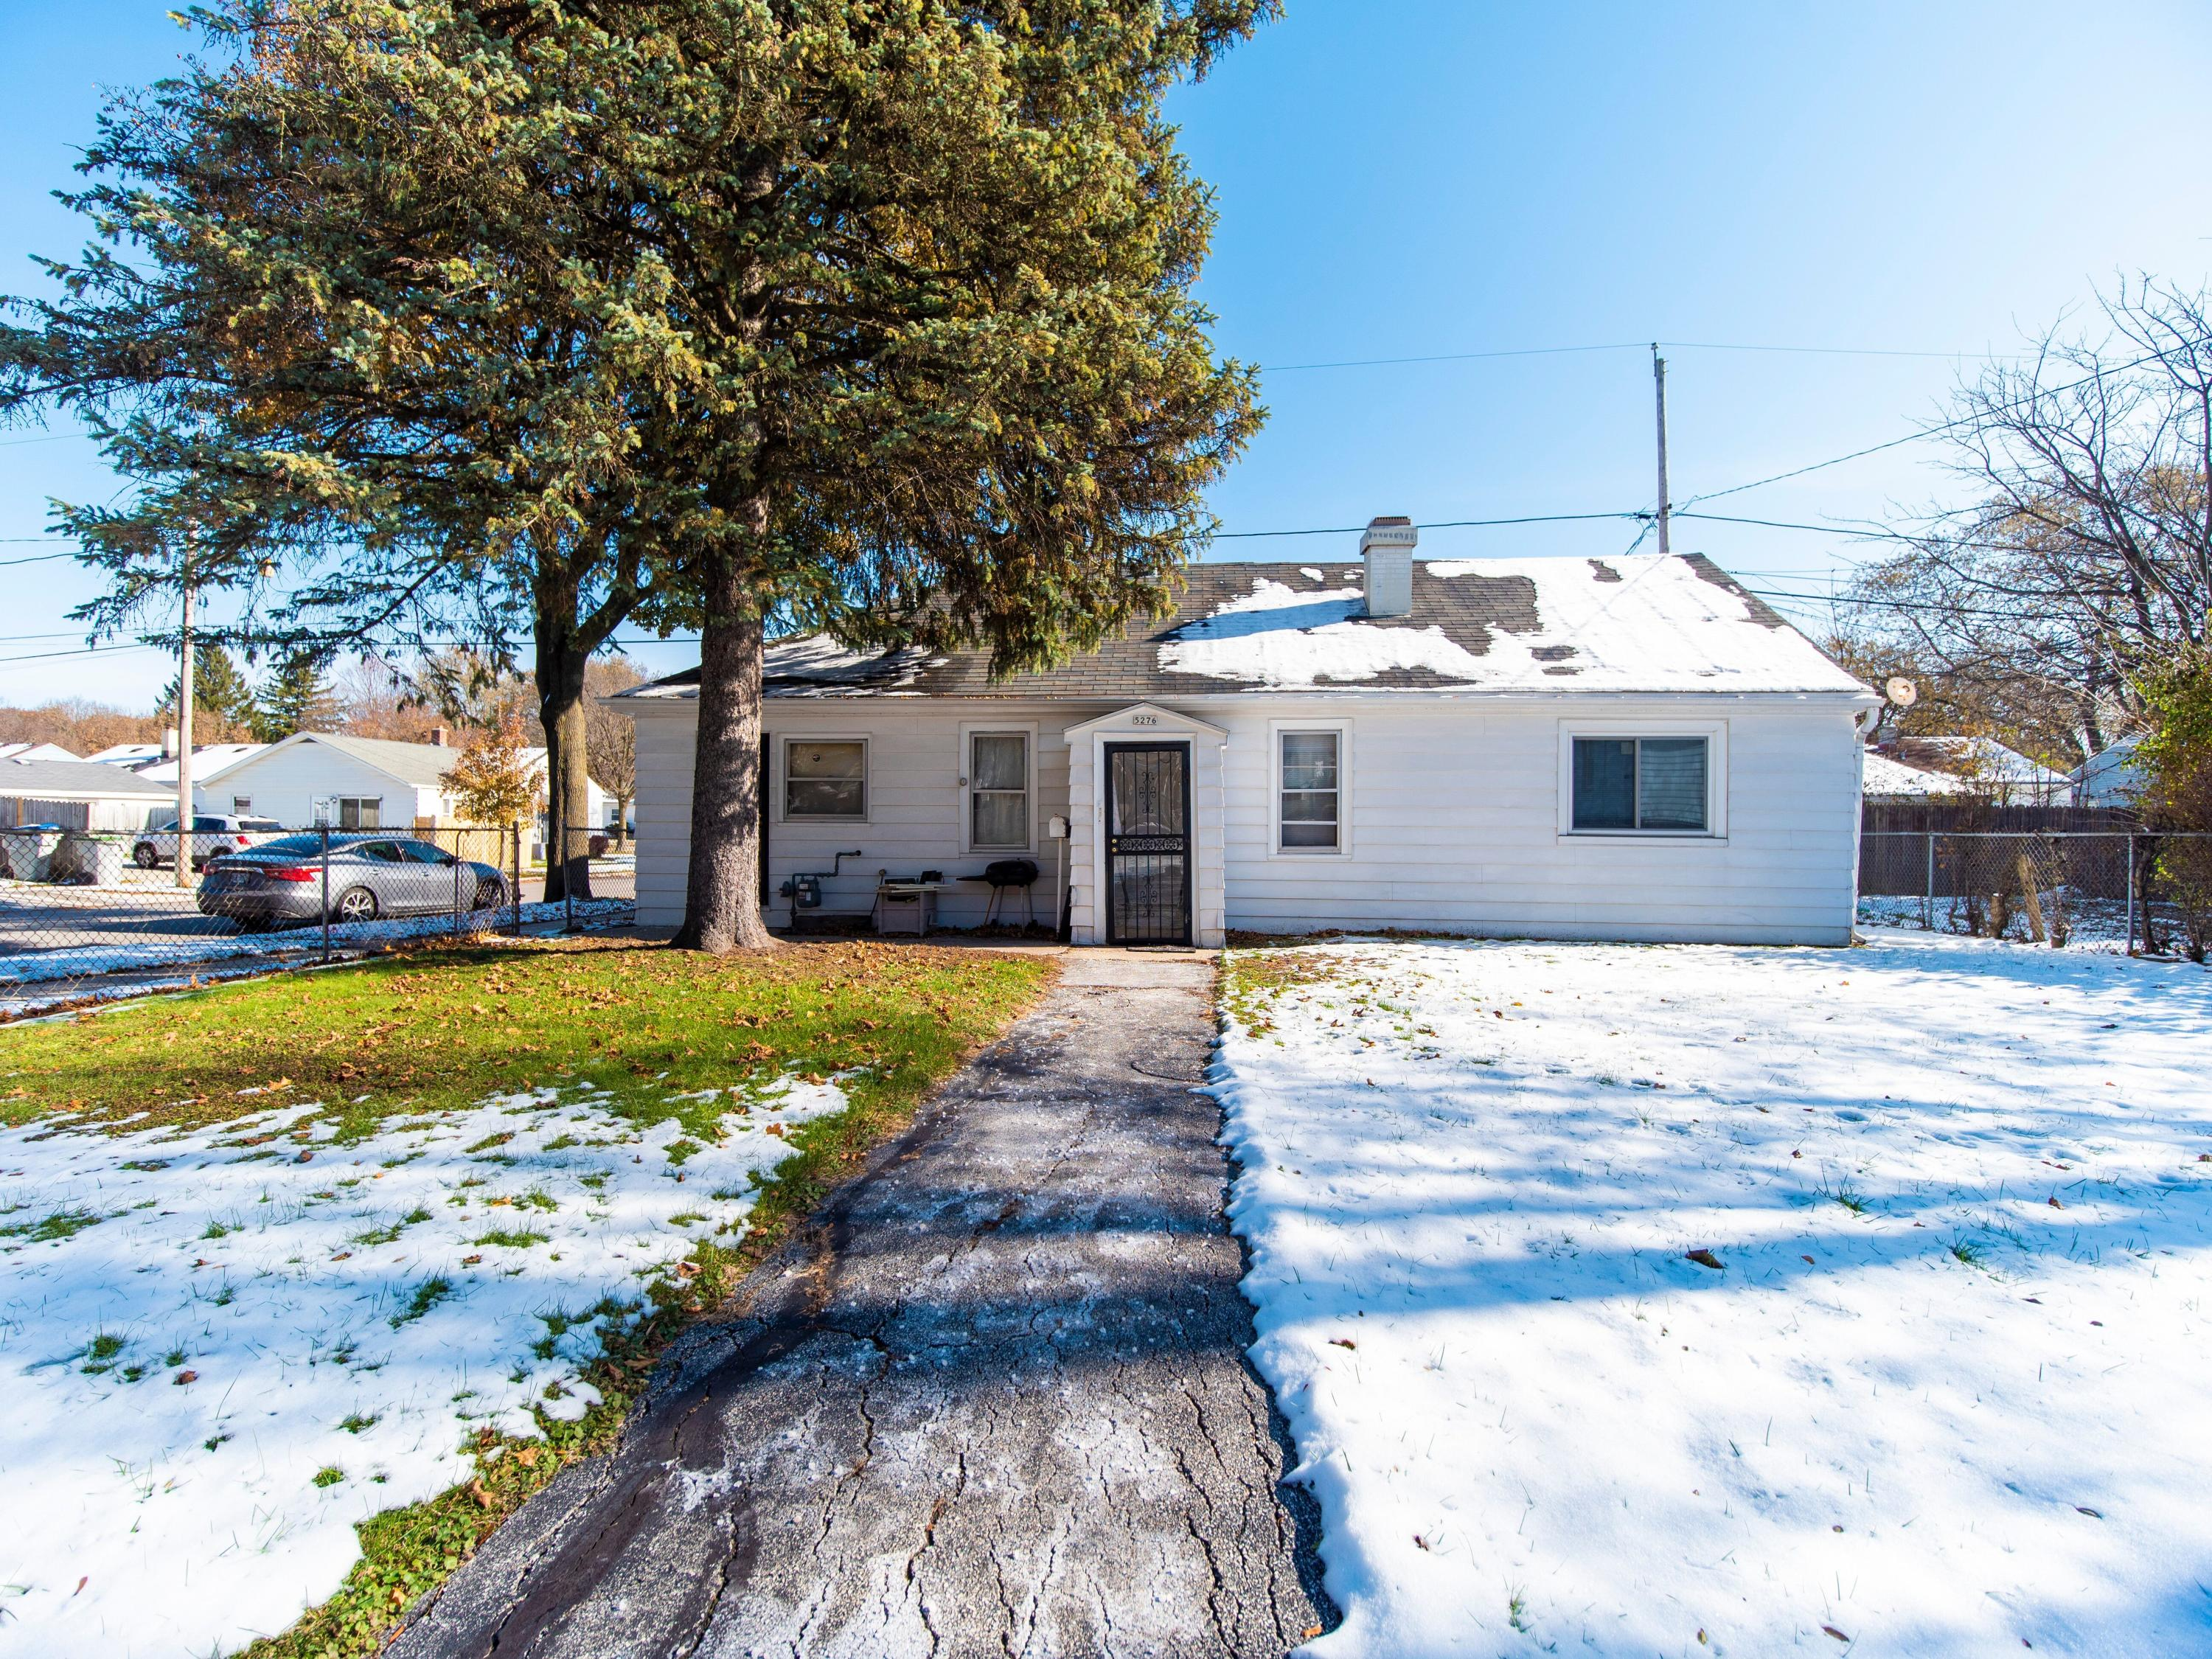 5276 51st Blvd, Milwaukee, Wisconsin 53218, 4 Bedrooms Bedrooms, 5 Rooms Rooms,2 BathroomsBathrooms,Single-Family,For Sale,51st Blvd,1667589